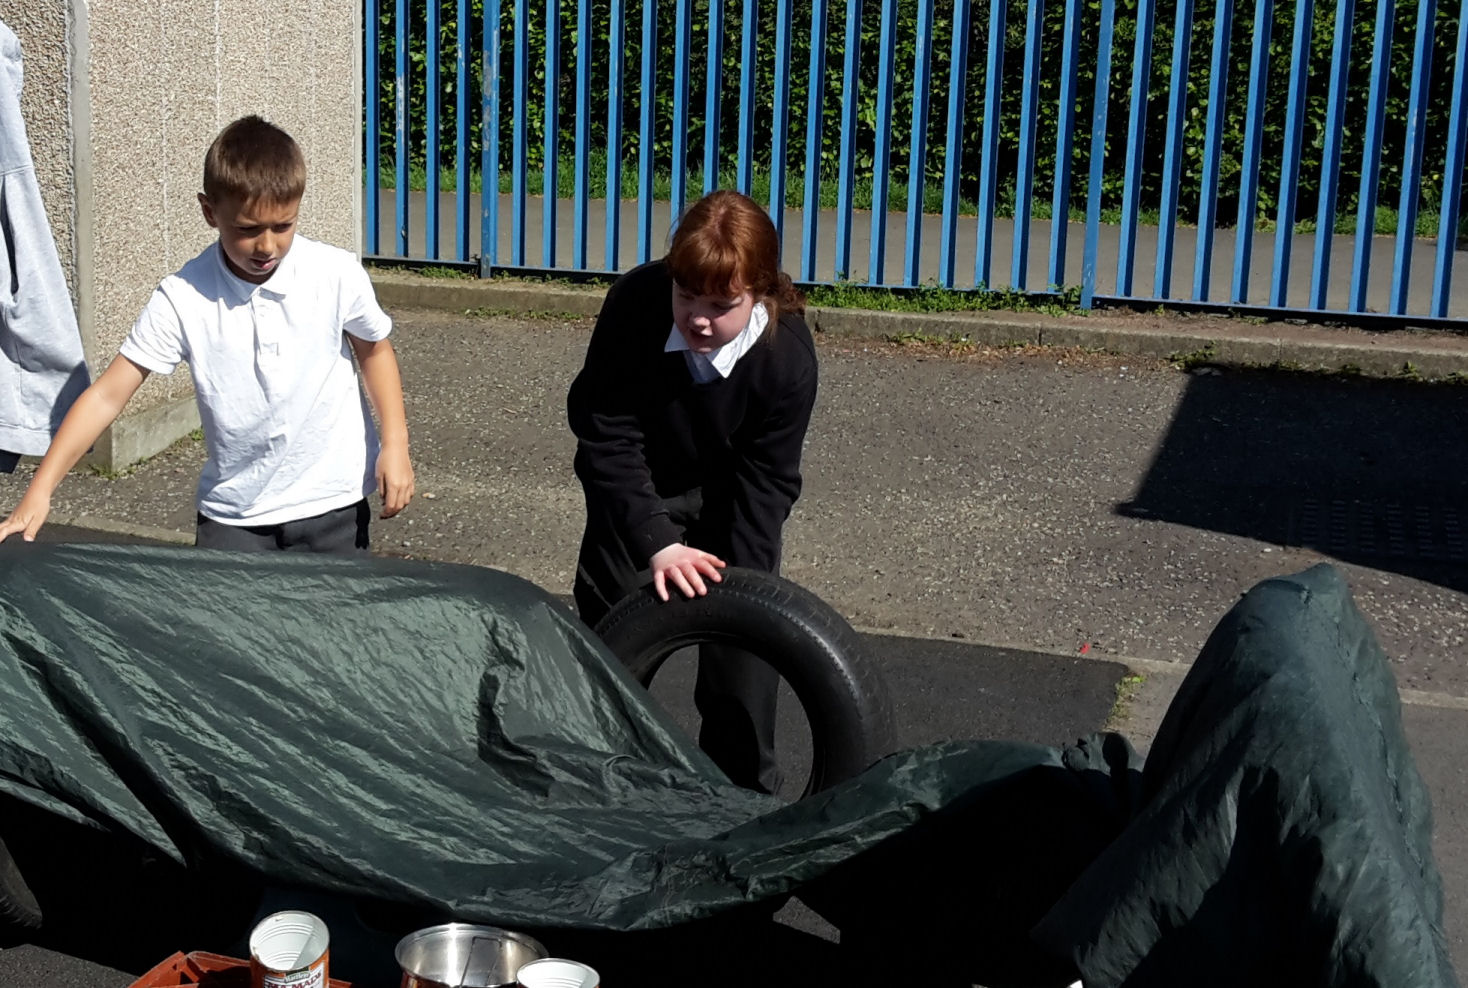 a boy and girl work together to build a den with material and tyres